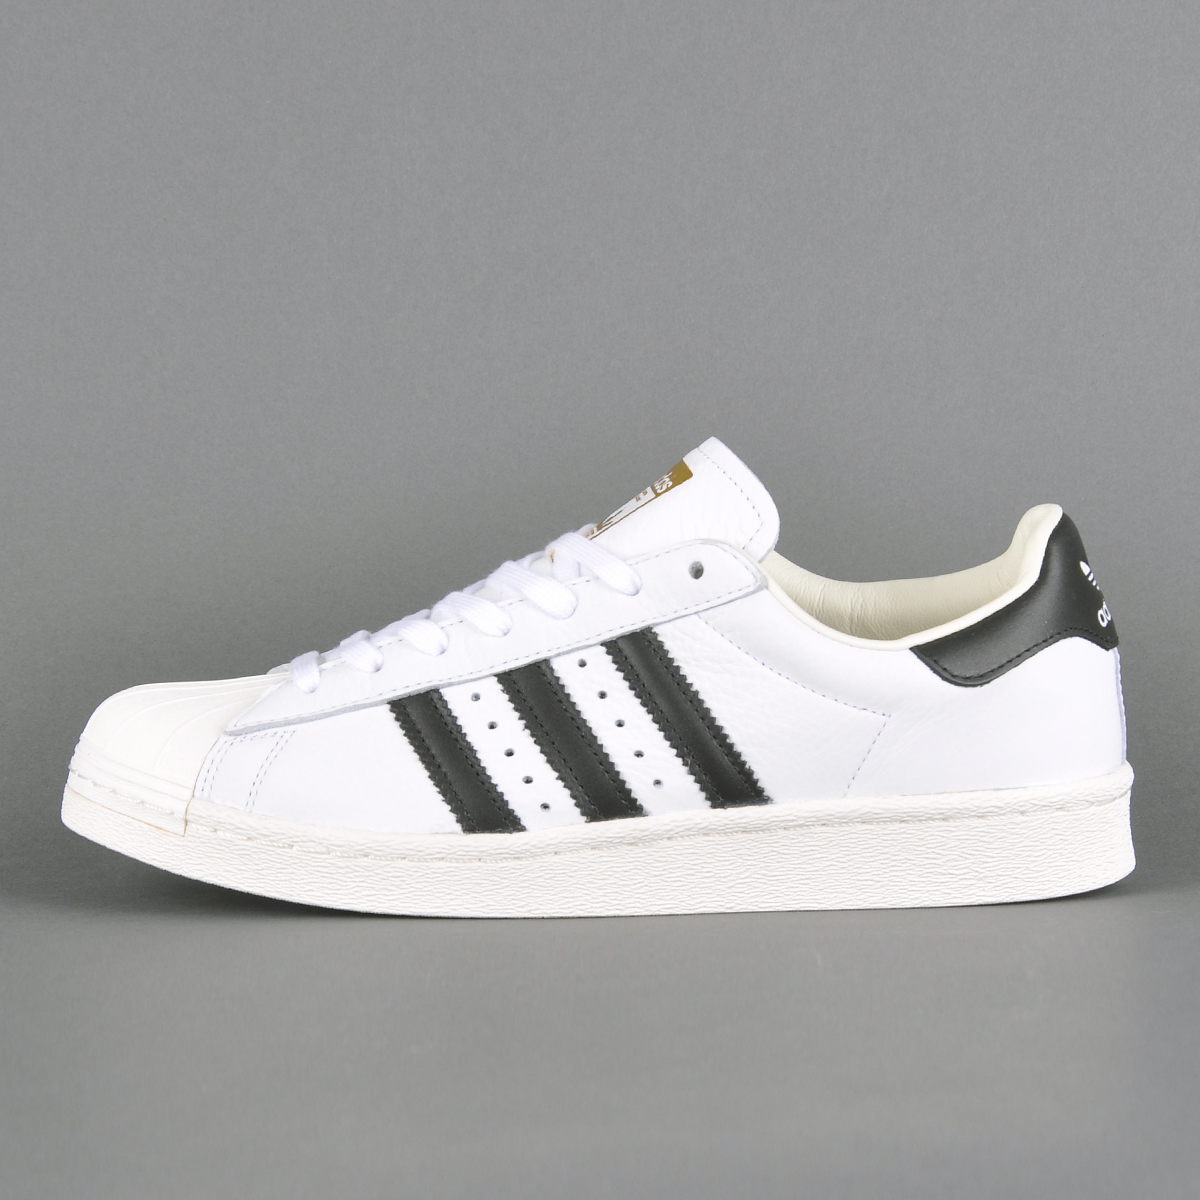 8478f33b7 adidas Superstar Boost